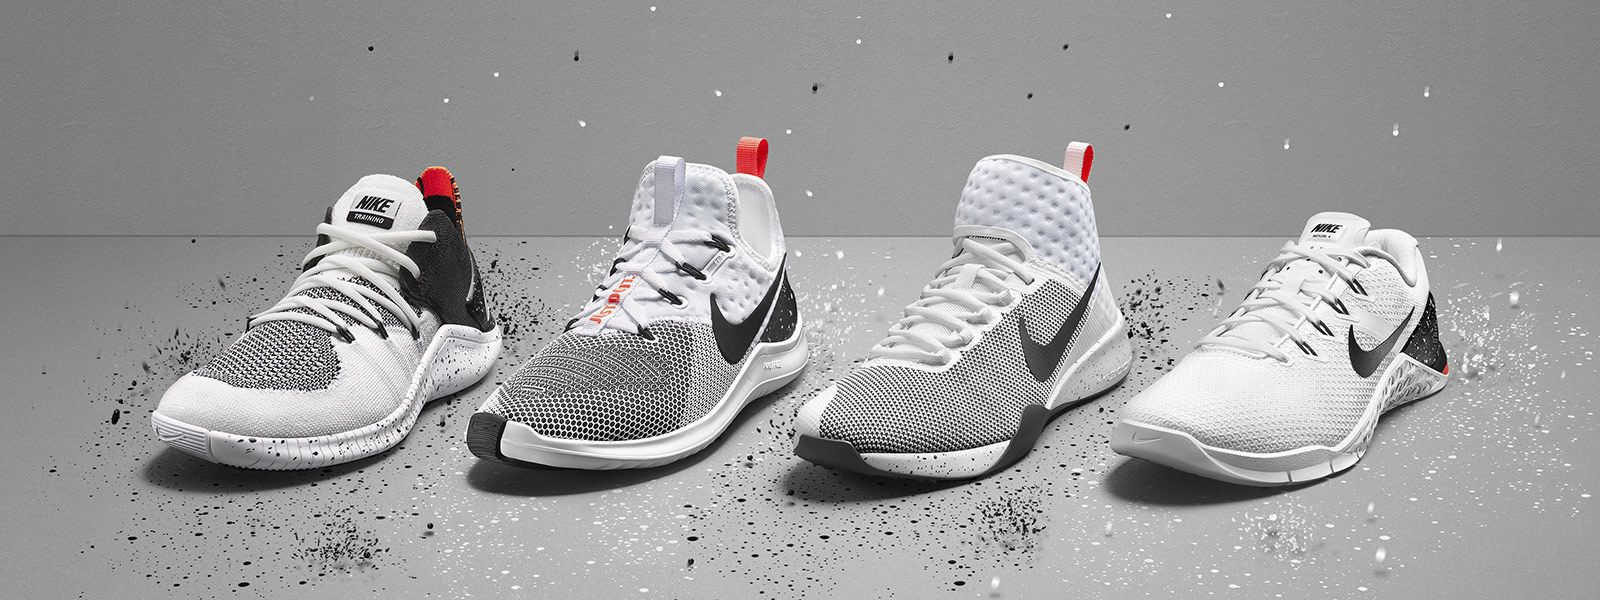 Nike Air Max Sequent Online Shop